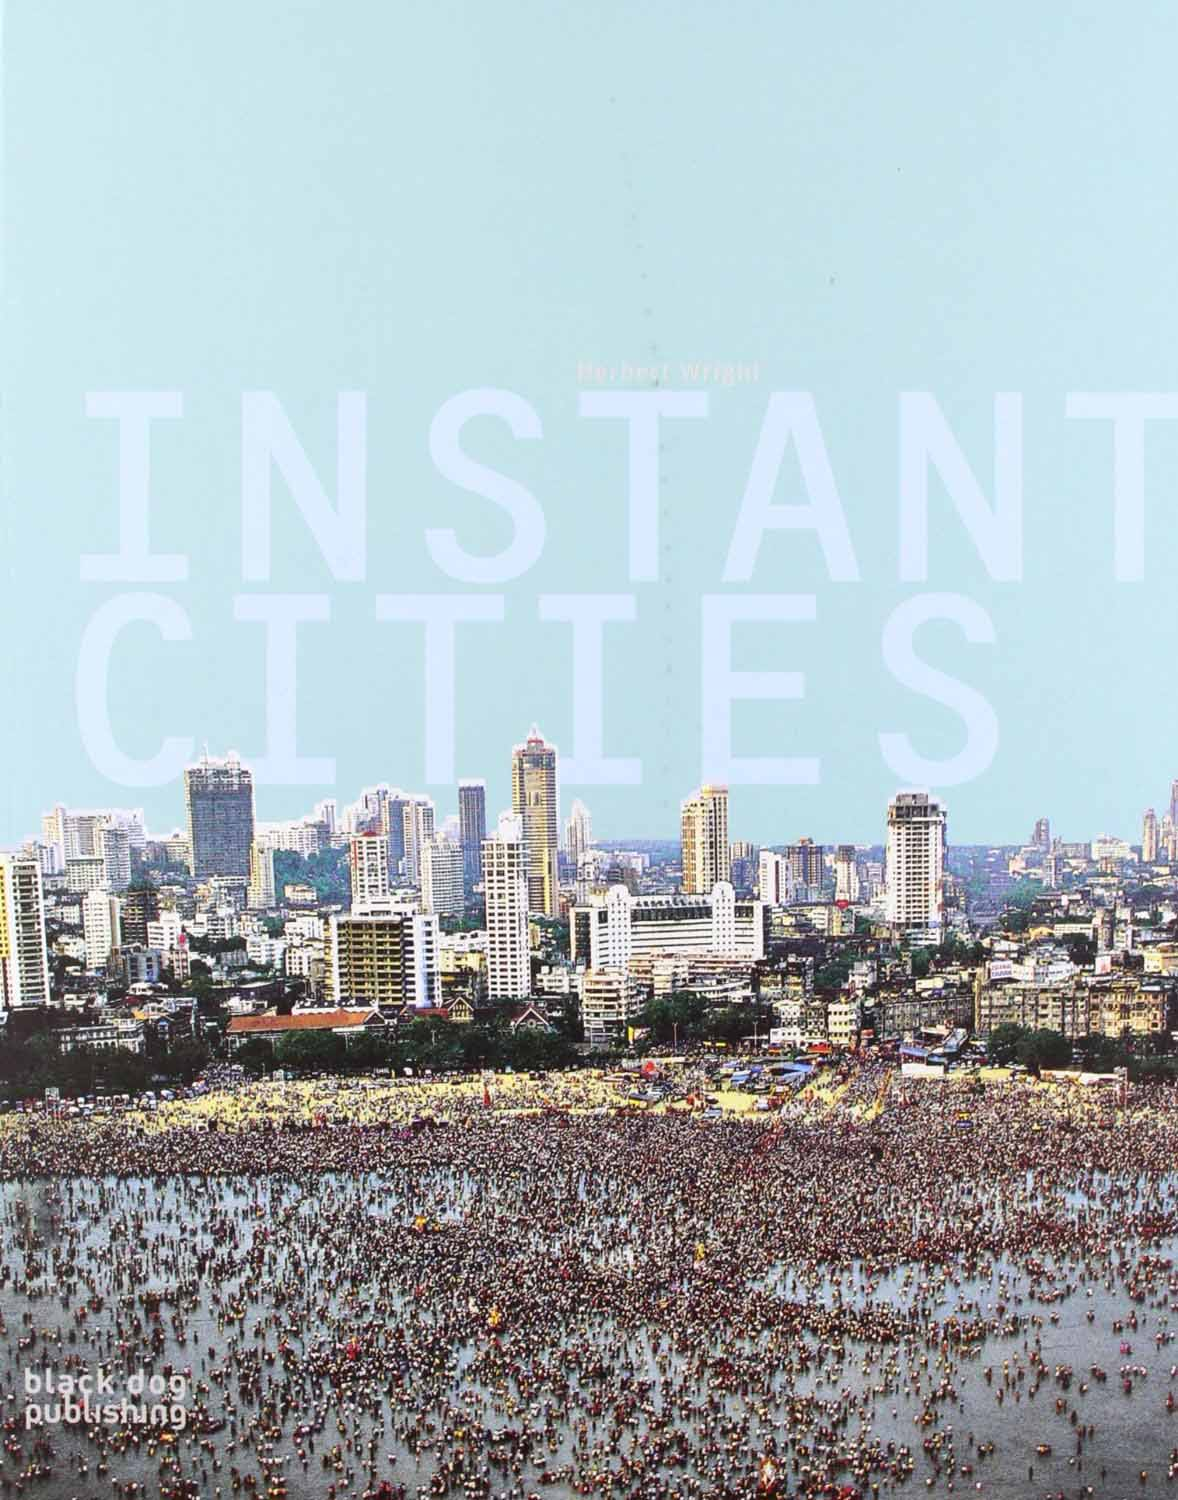 Instant Cities first sticker book cities of the world